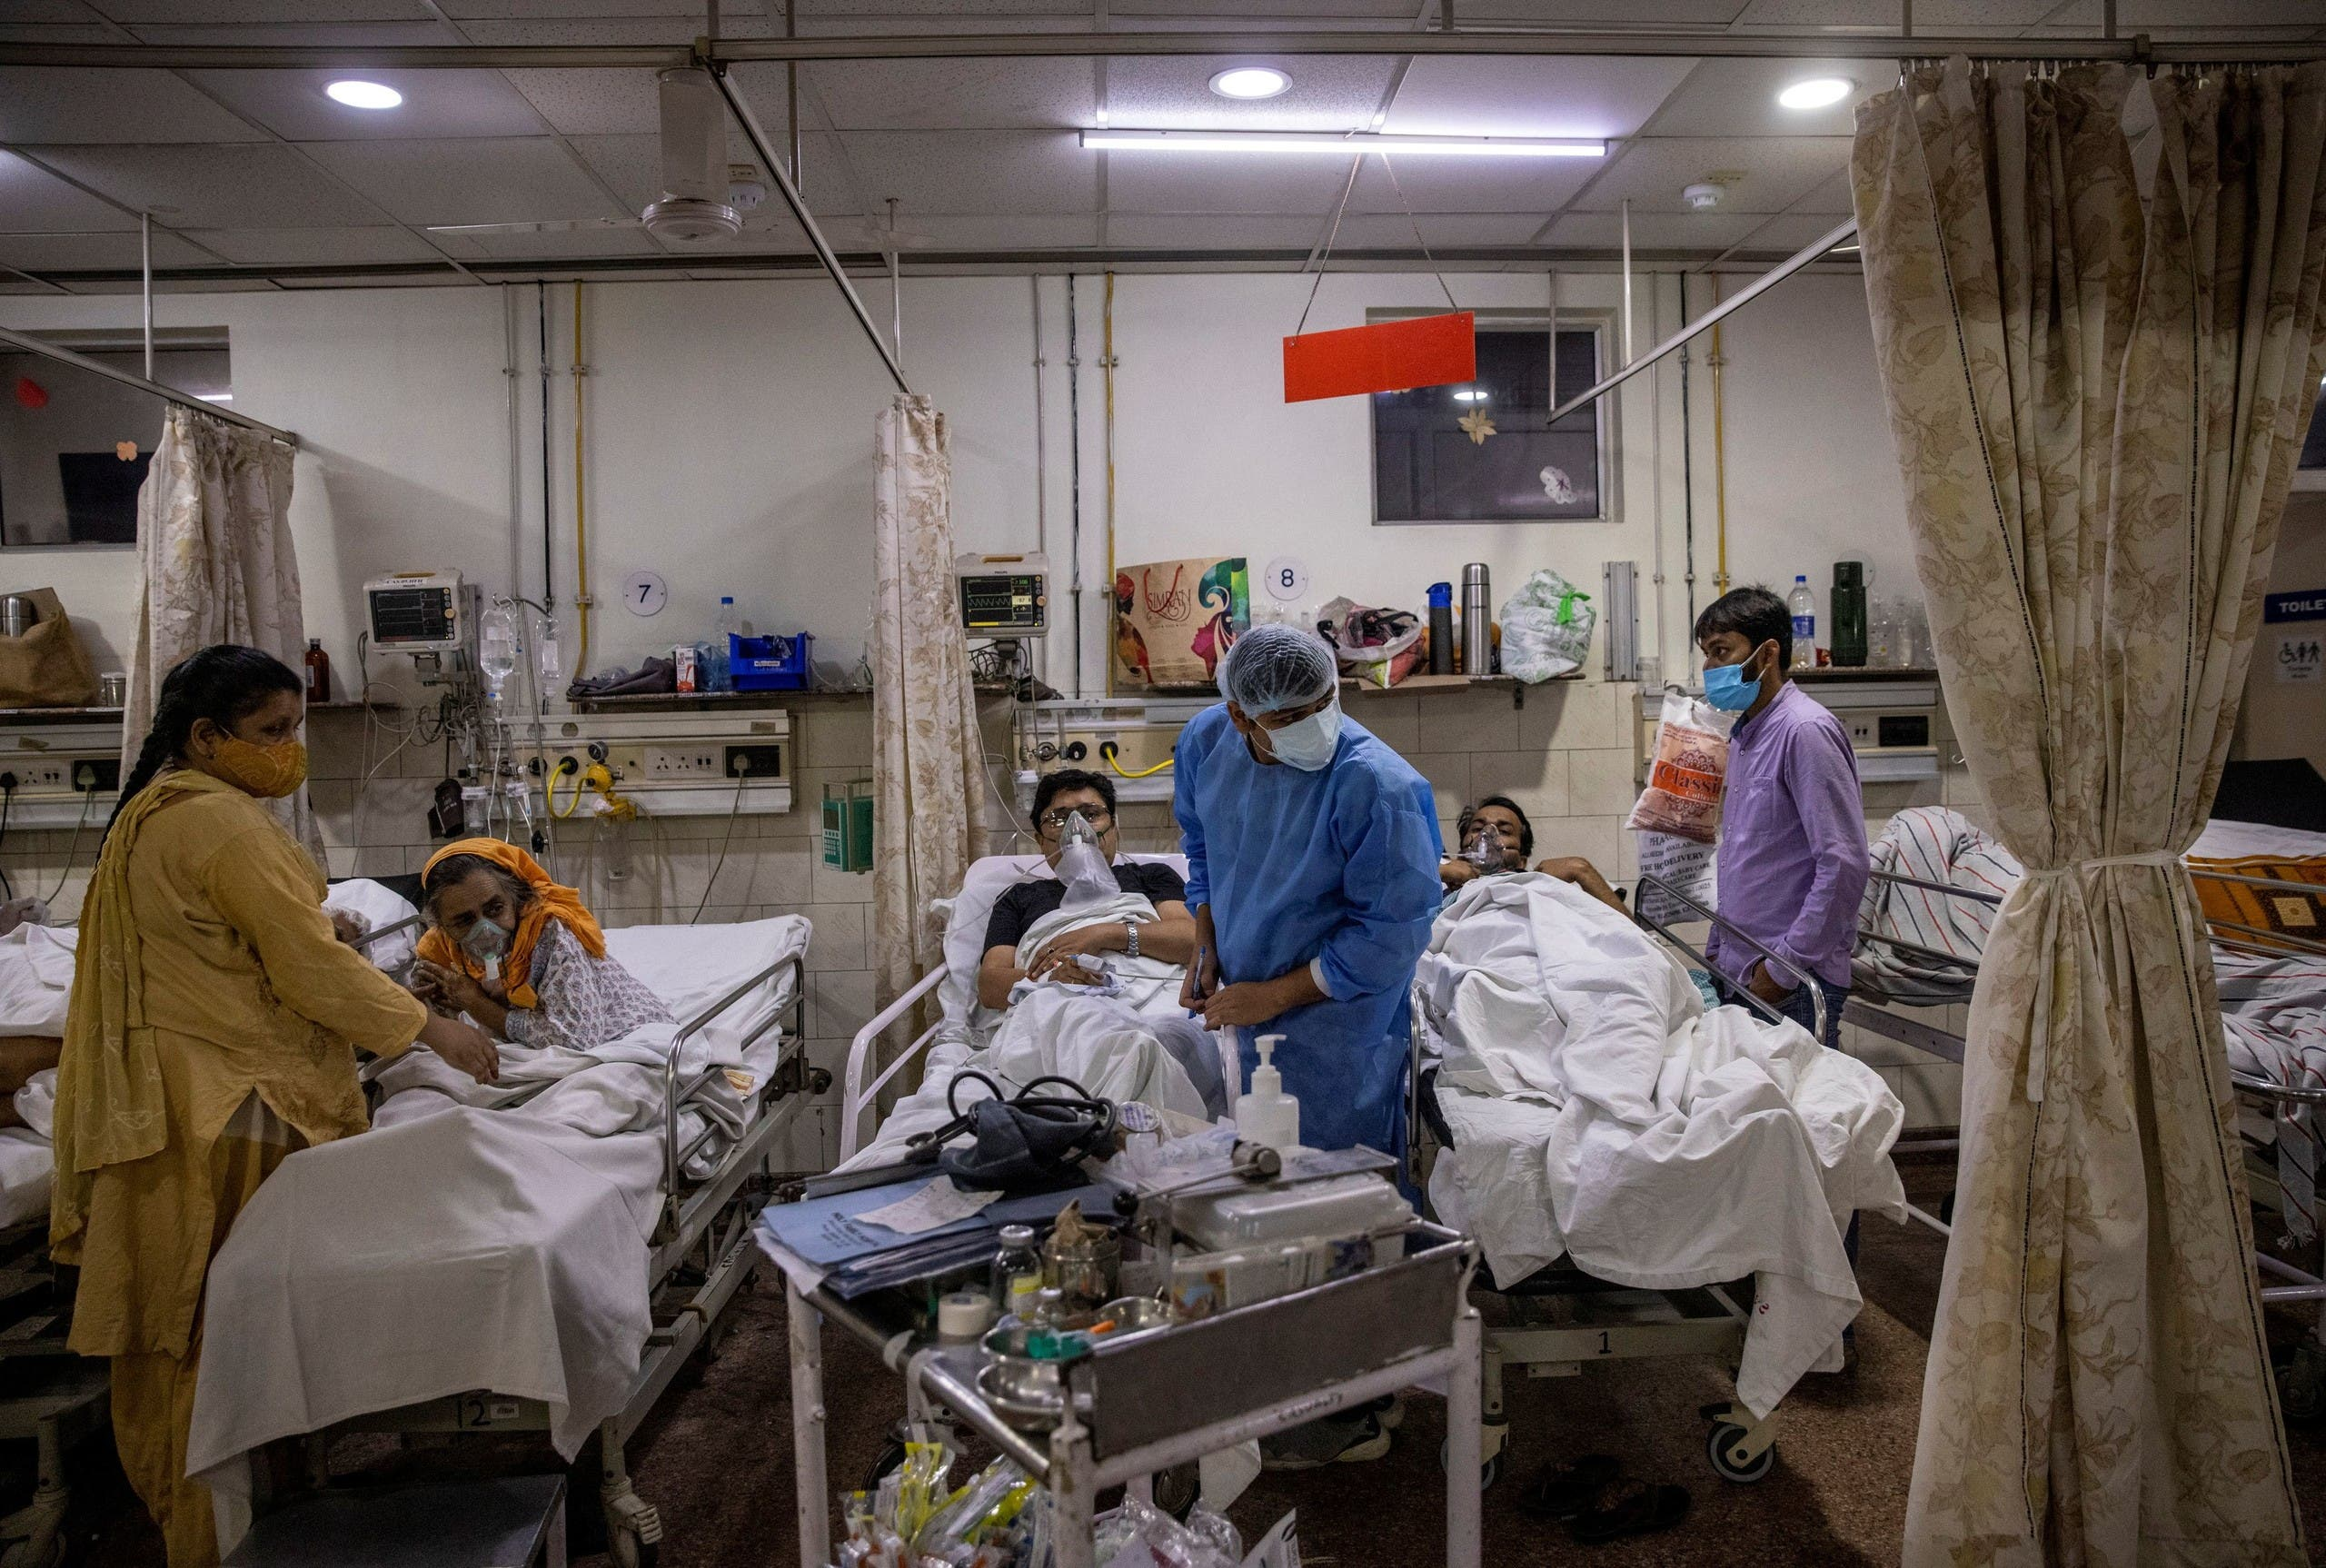 Rohan Aggarwal, 26, a resident doctor treating patients suffering from the coronavirus disease (COVID-19), tends to a patient during his 27-hour shift at Holy Family Hospital in New Delhi, India, May 1, 2021.